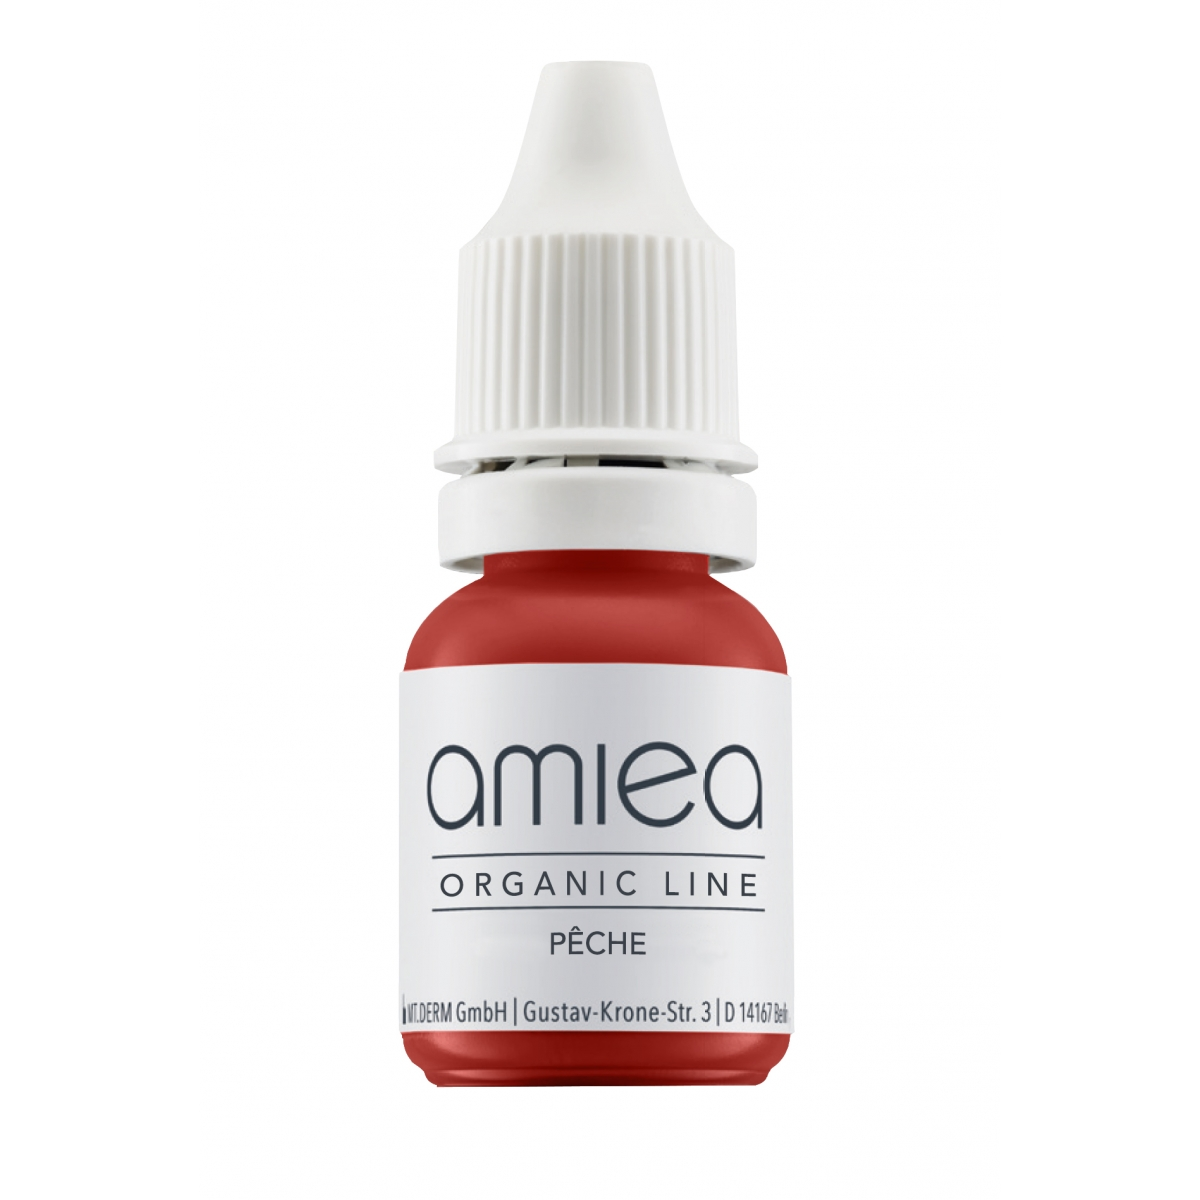 Organicline (5 ml)  - PIGMENTS AMIEA ORGANICLINE PECHE, Flacon 5 ml